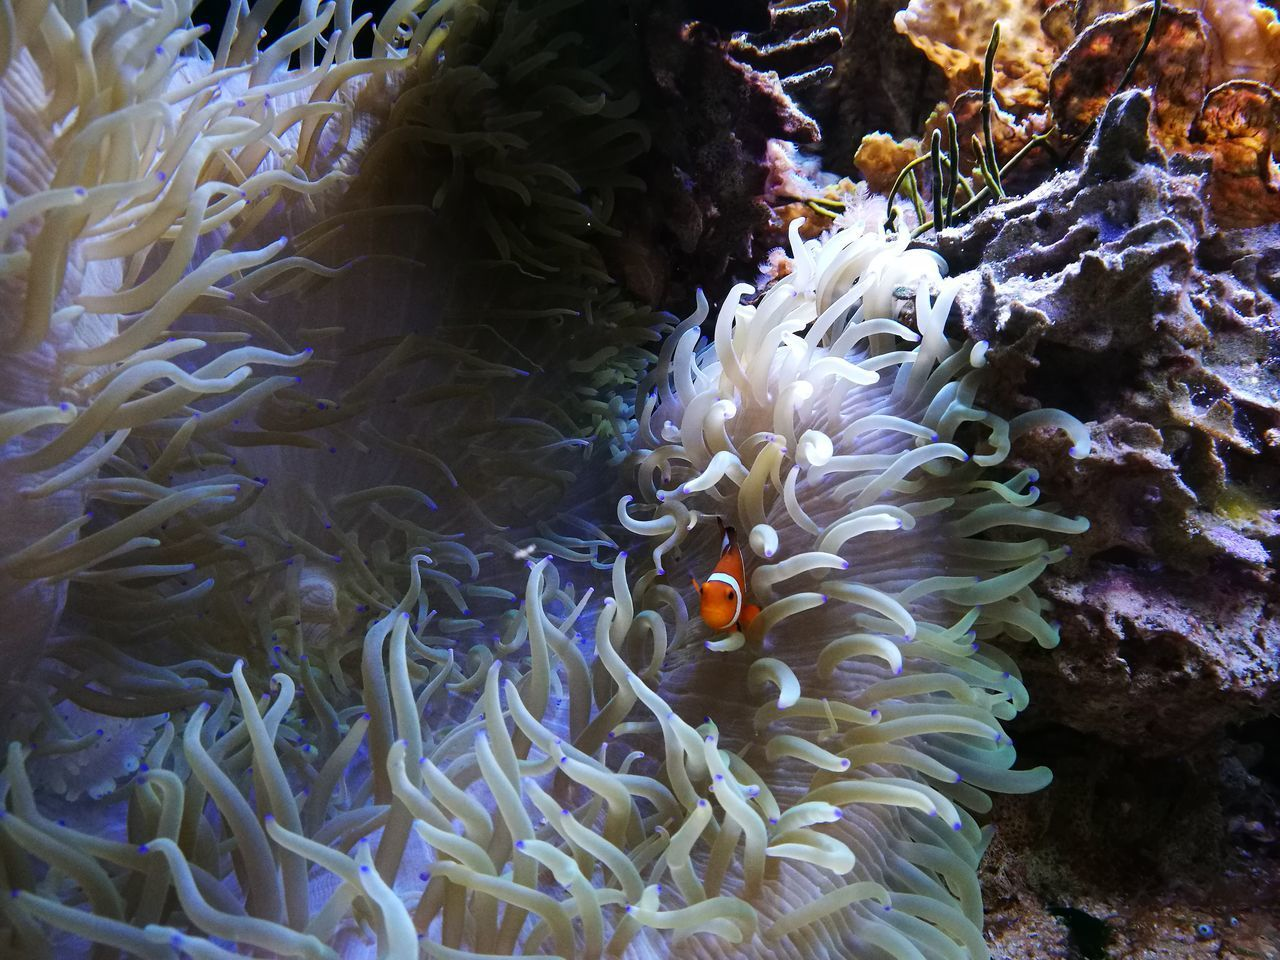 sea, underwater, animals in the wild, animal wildlife, water, animal themes, animal, undersea, swimming, marine, sea life, coral, no people, vertebrate, invertebrate, fish, group of animals, nature, beauty in nature, clown fish, outdoors